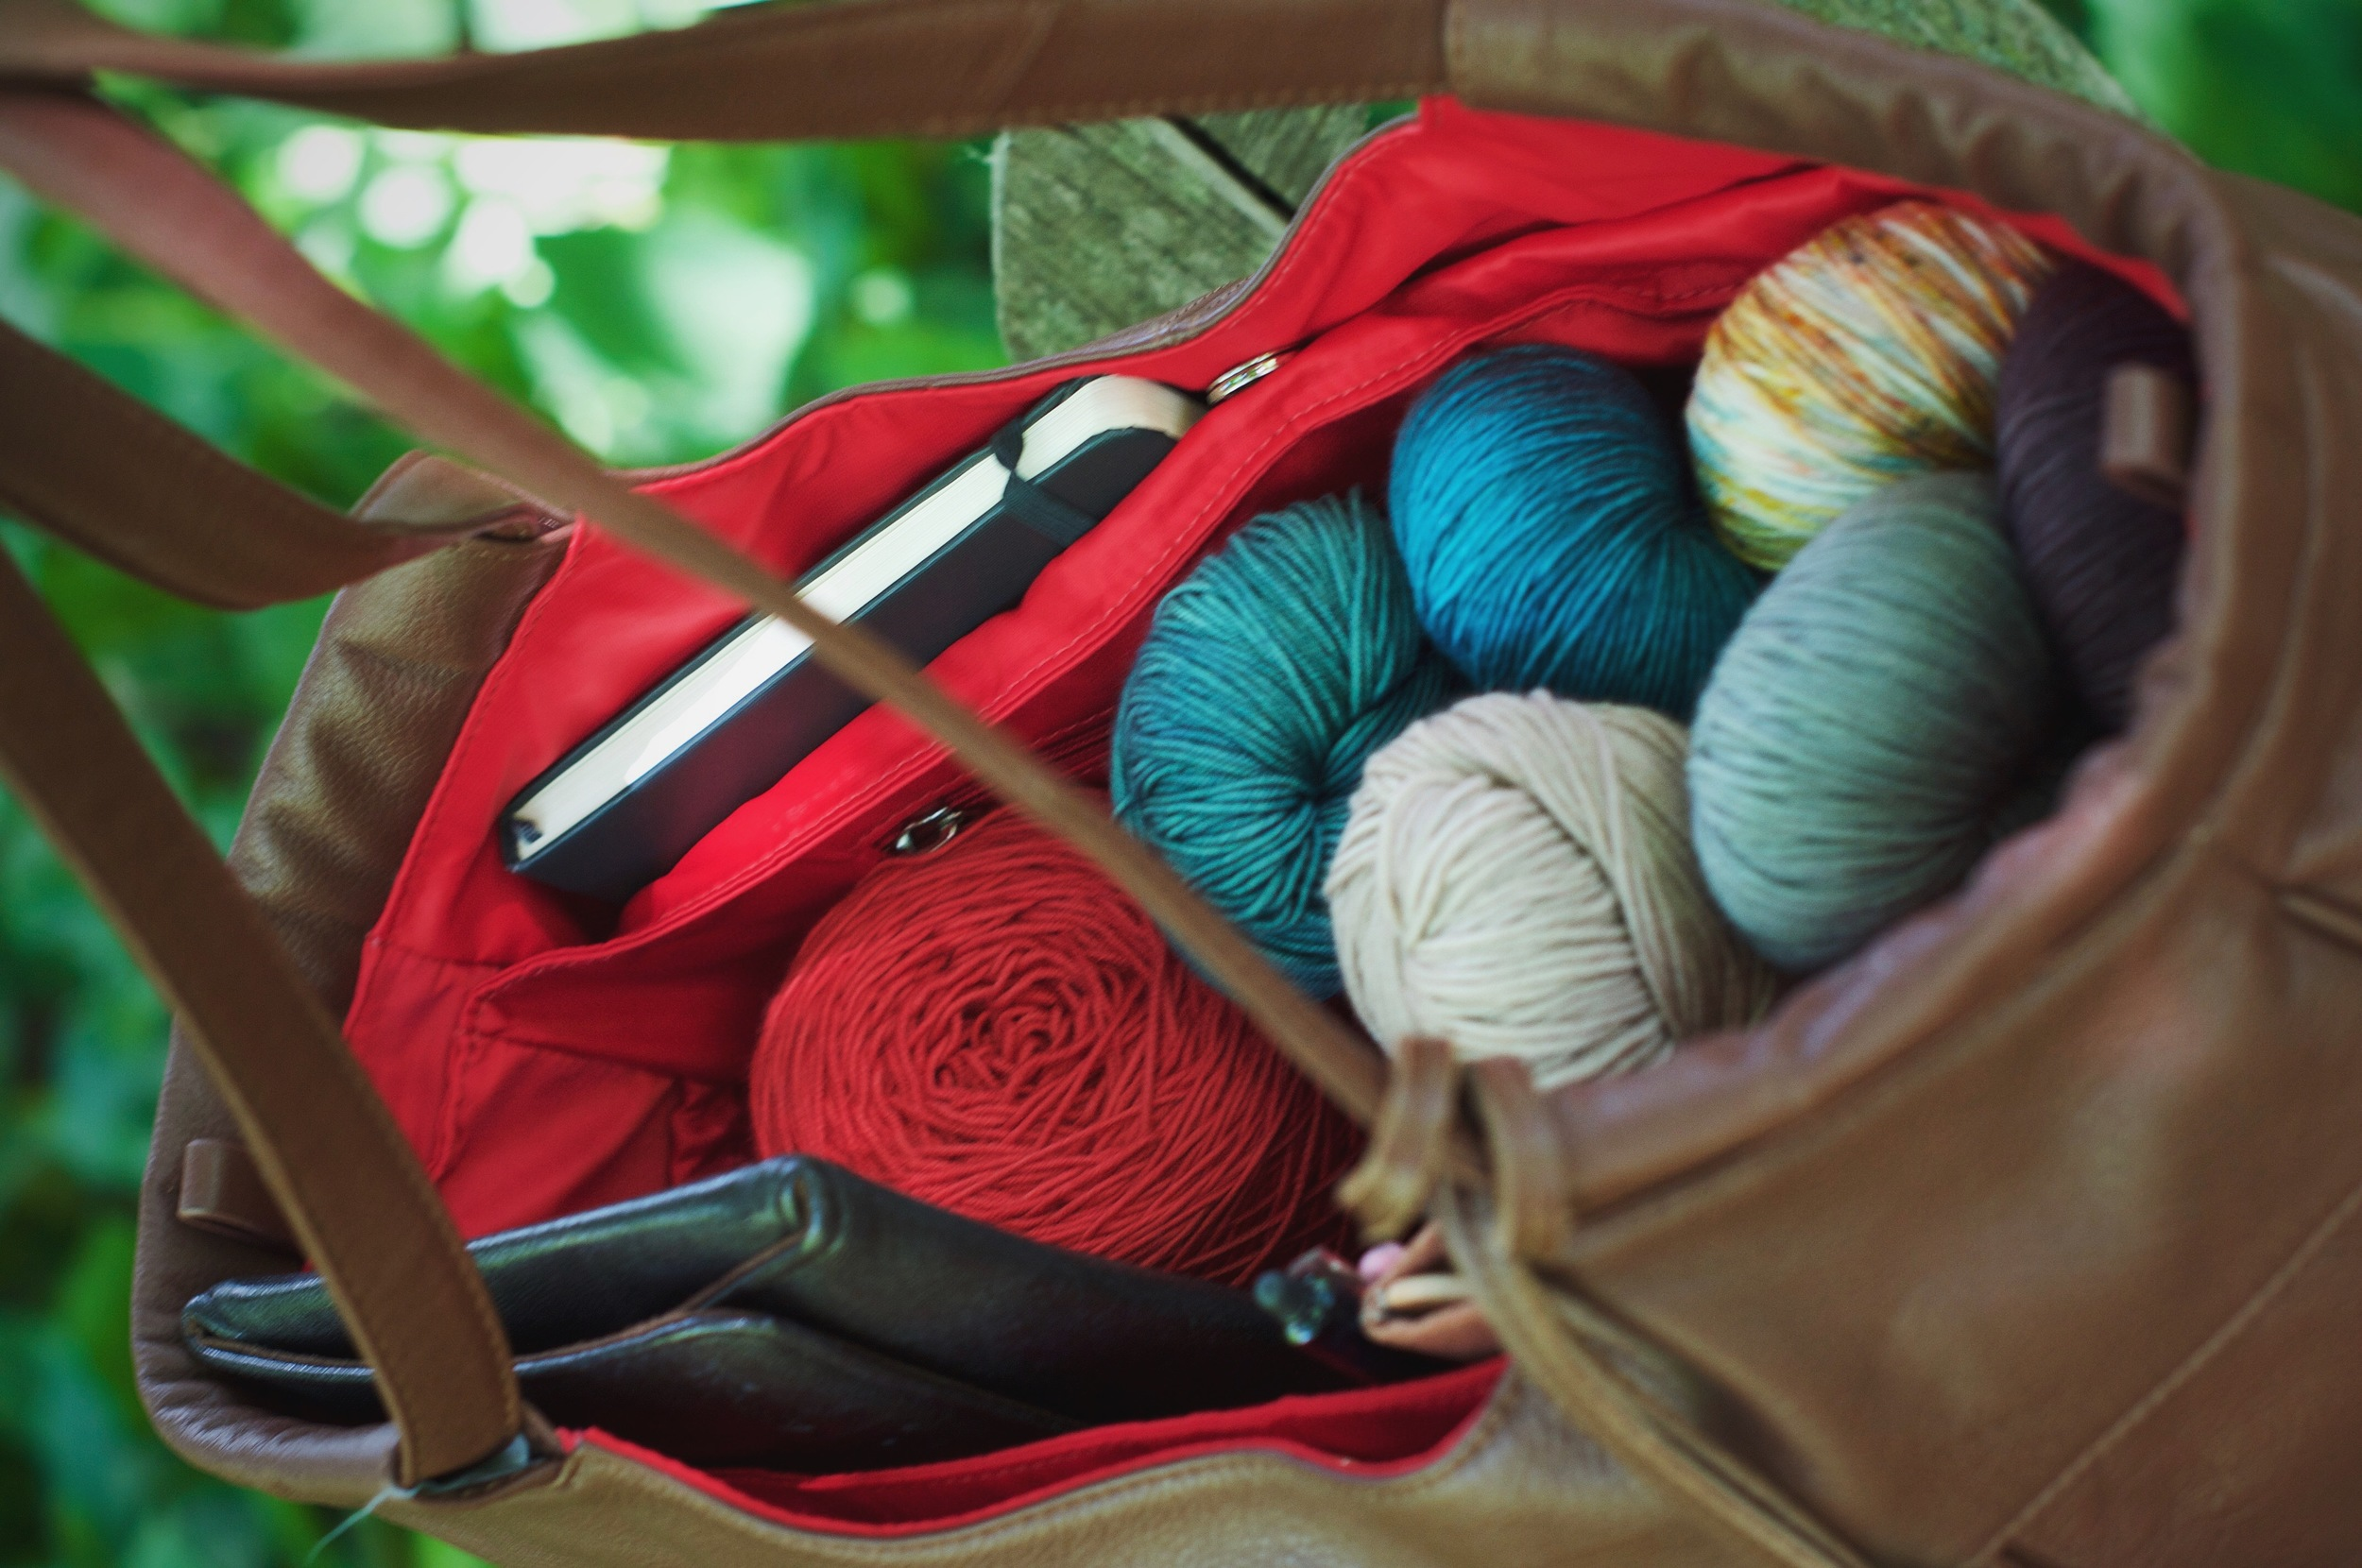 On those rare and wonderful occasions that I get to sneak off and knit sans babies ;), here she is, filled to the brim with my latest yarn haul, interchangeable needles, and sketchbook, inspiration sparked and ready to go!